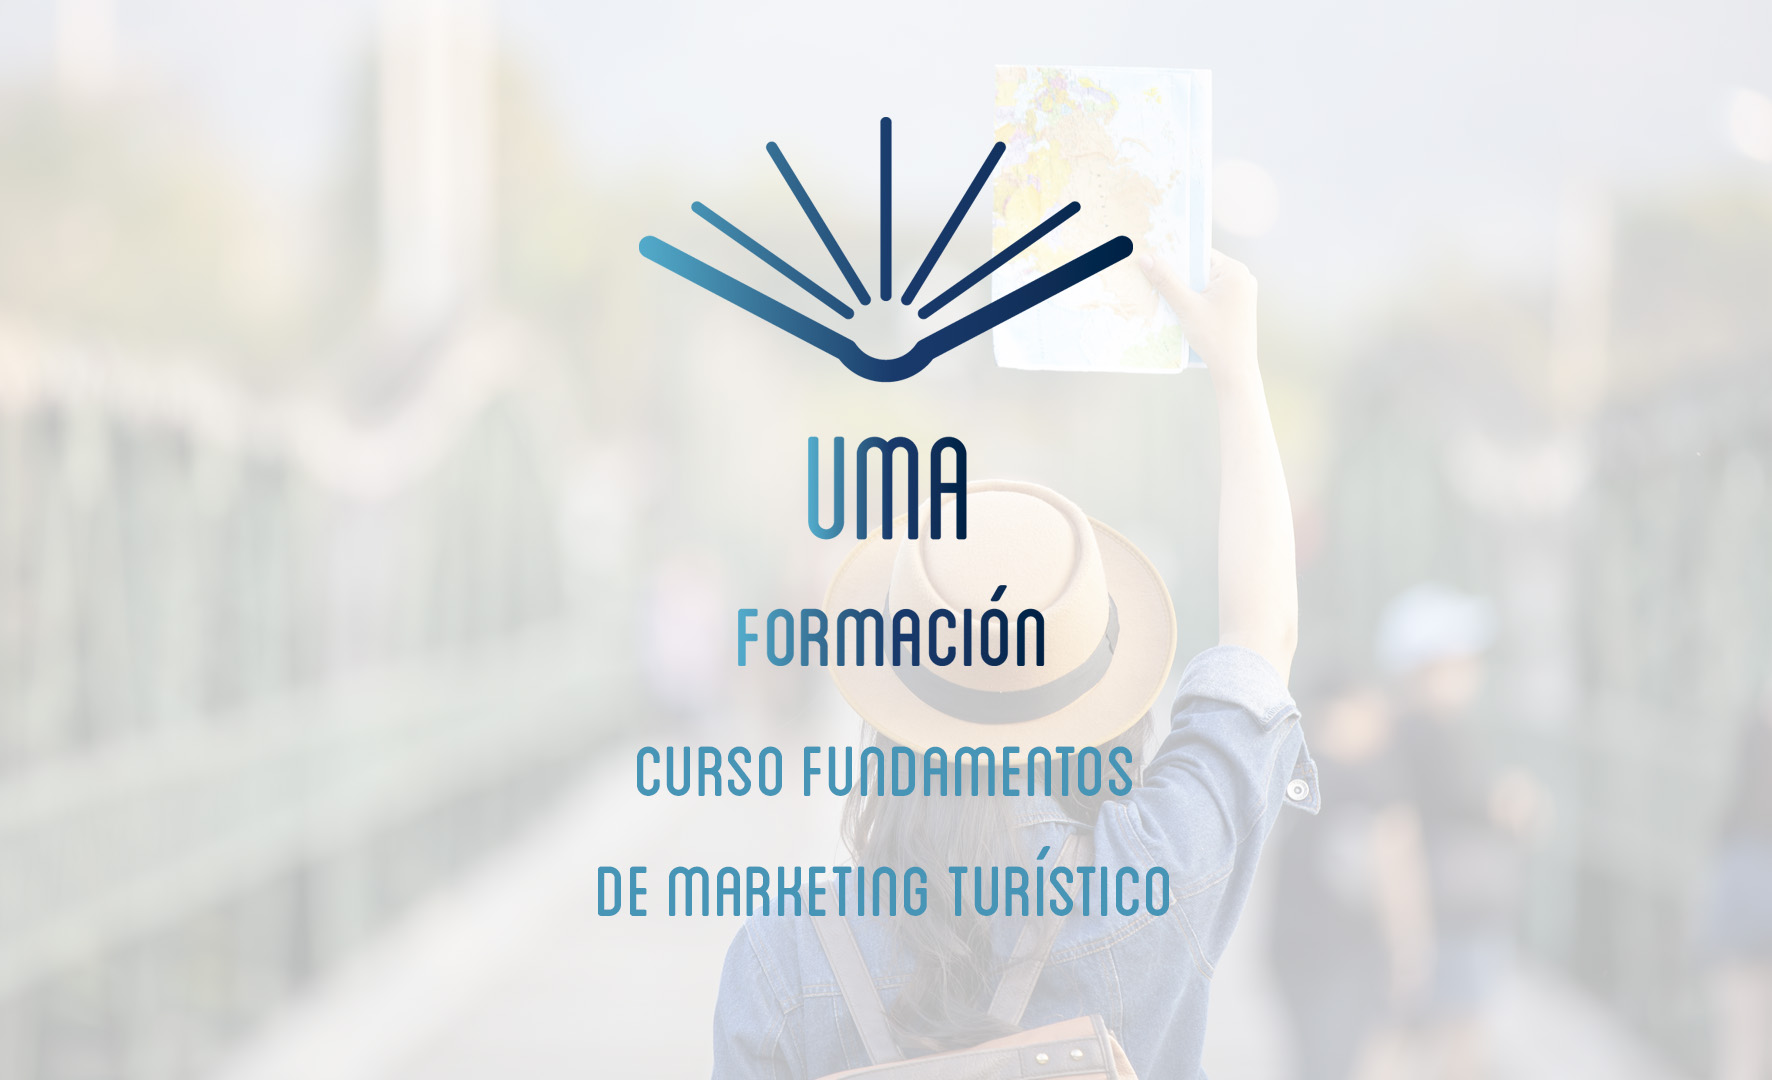 Curso Fundamentos de marketing turístico | UMA formación, elearning, patrimonio cultural